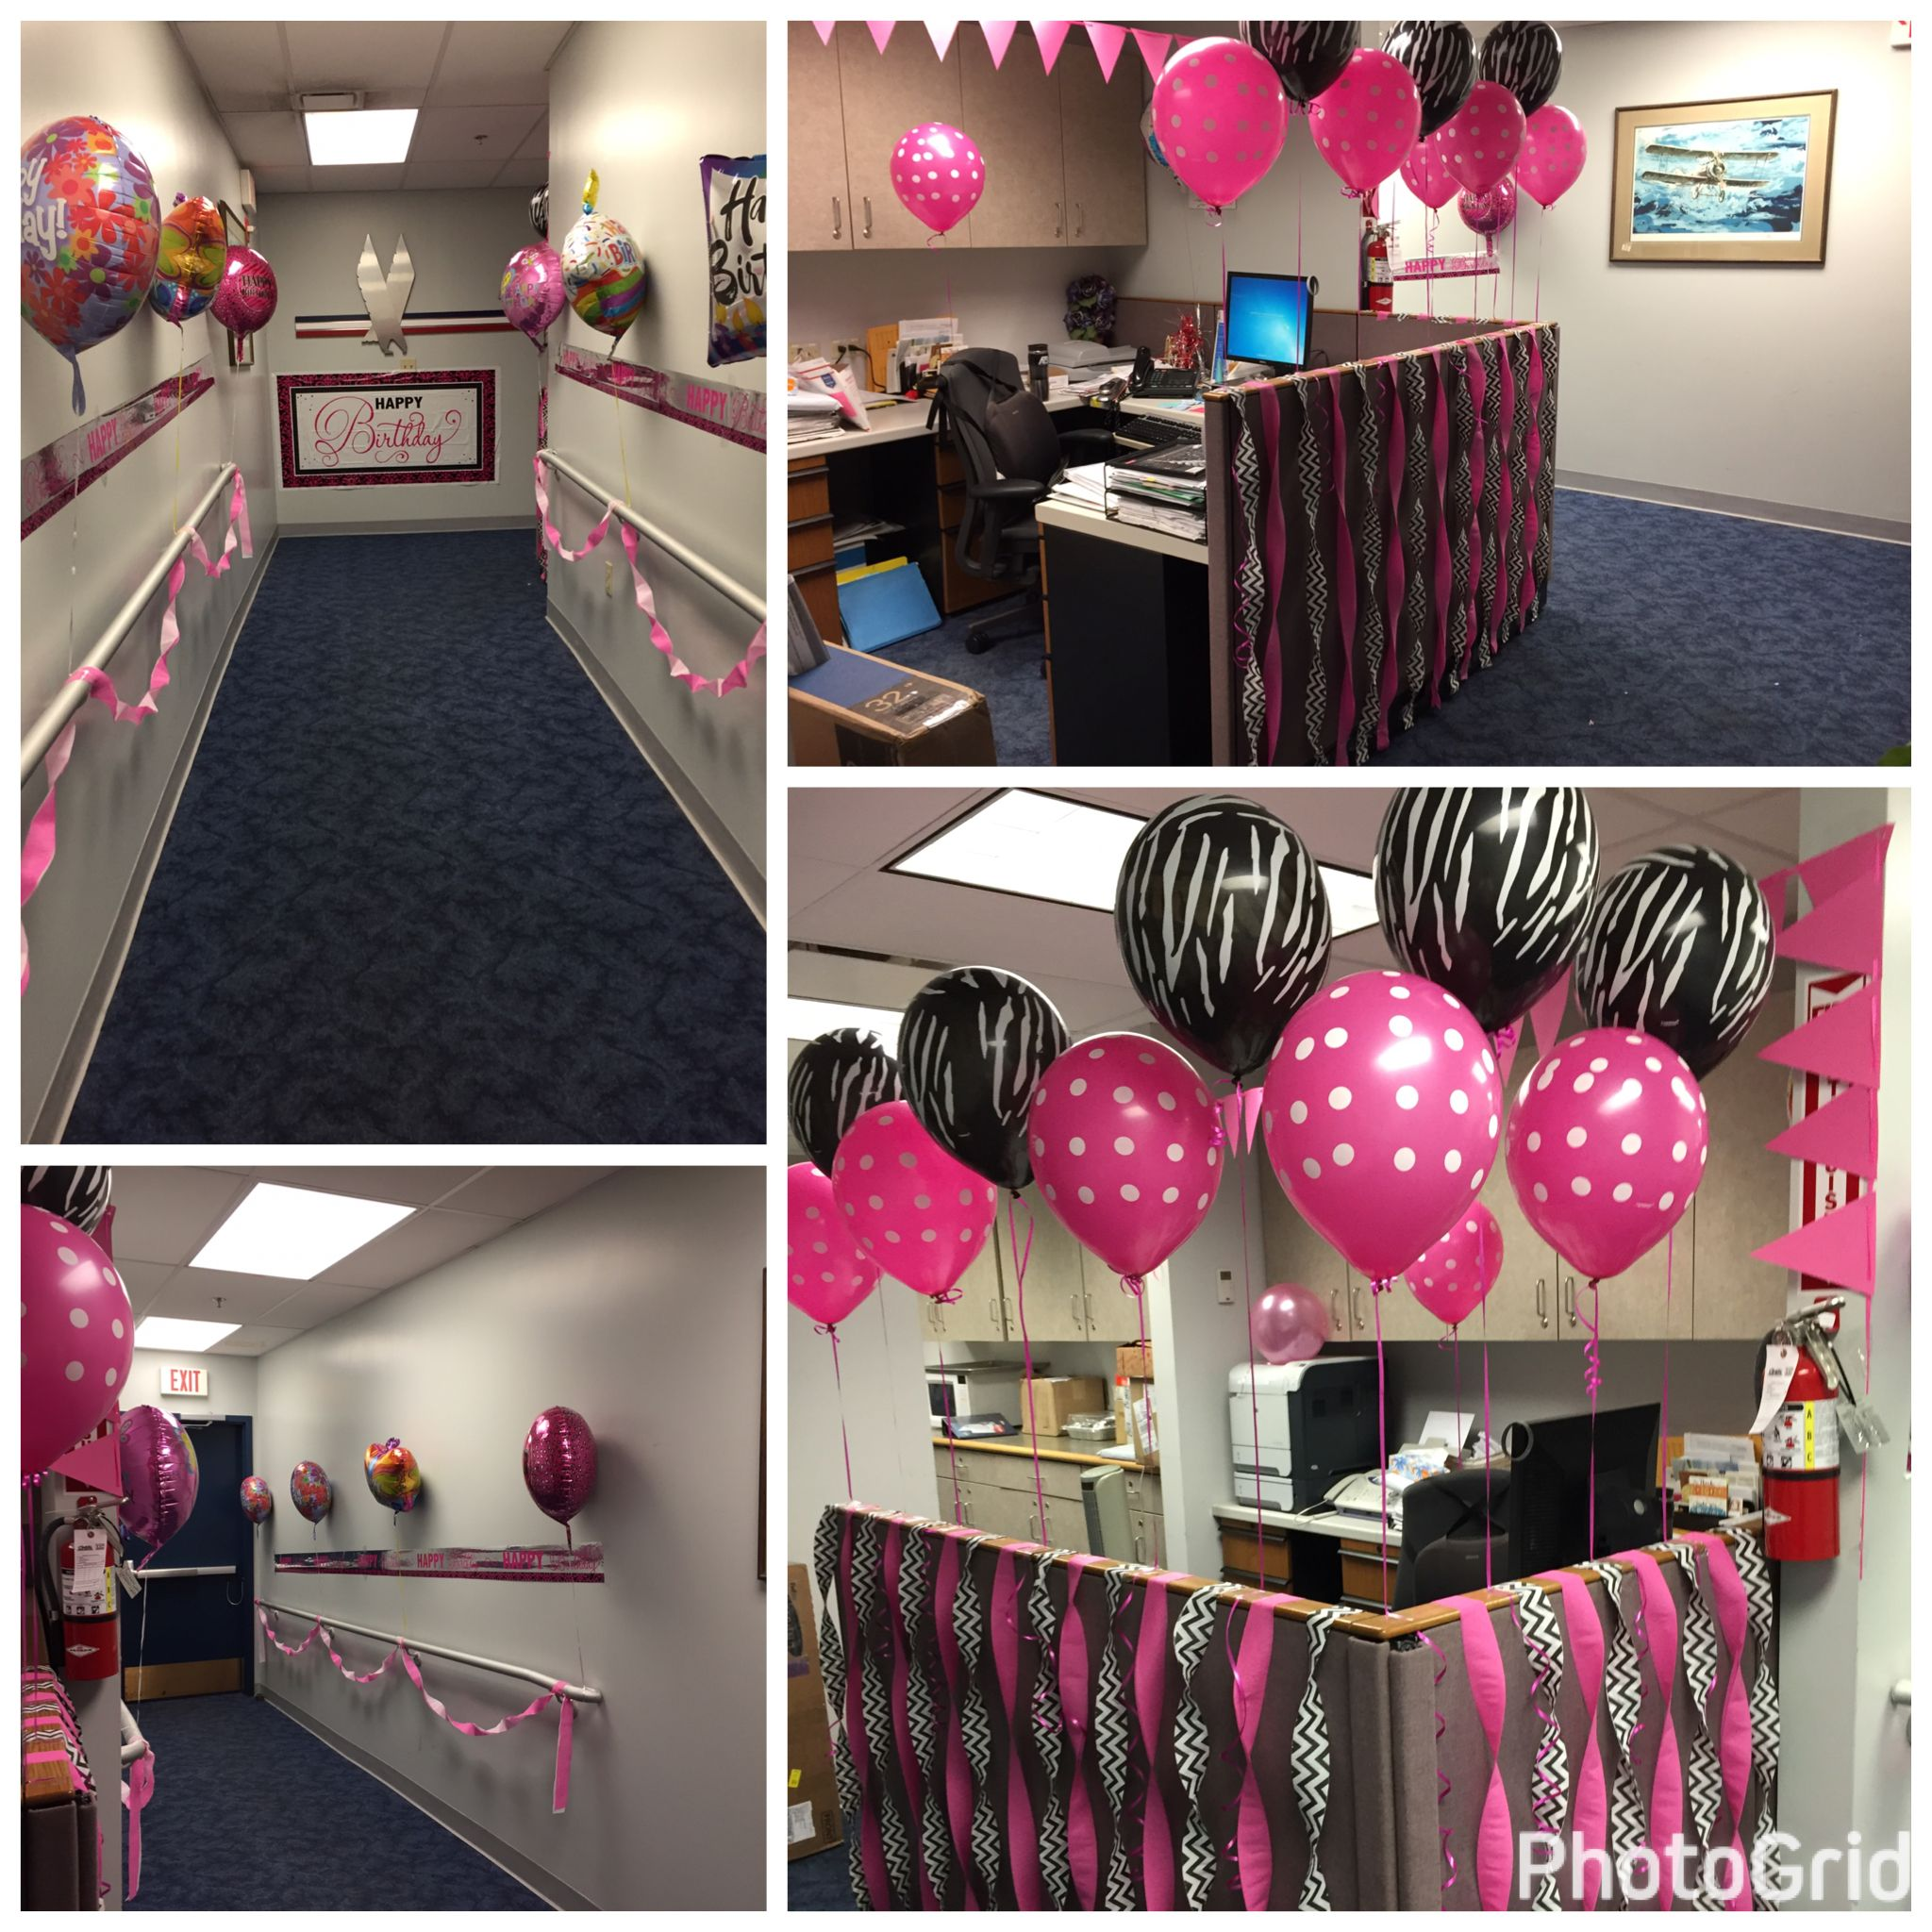 Decorating Office For Birthday Party!